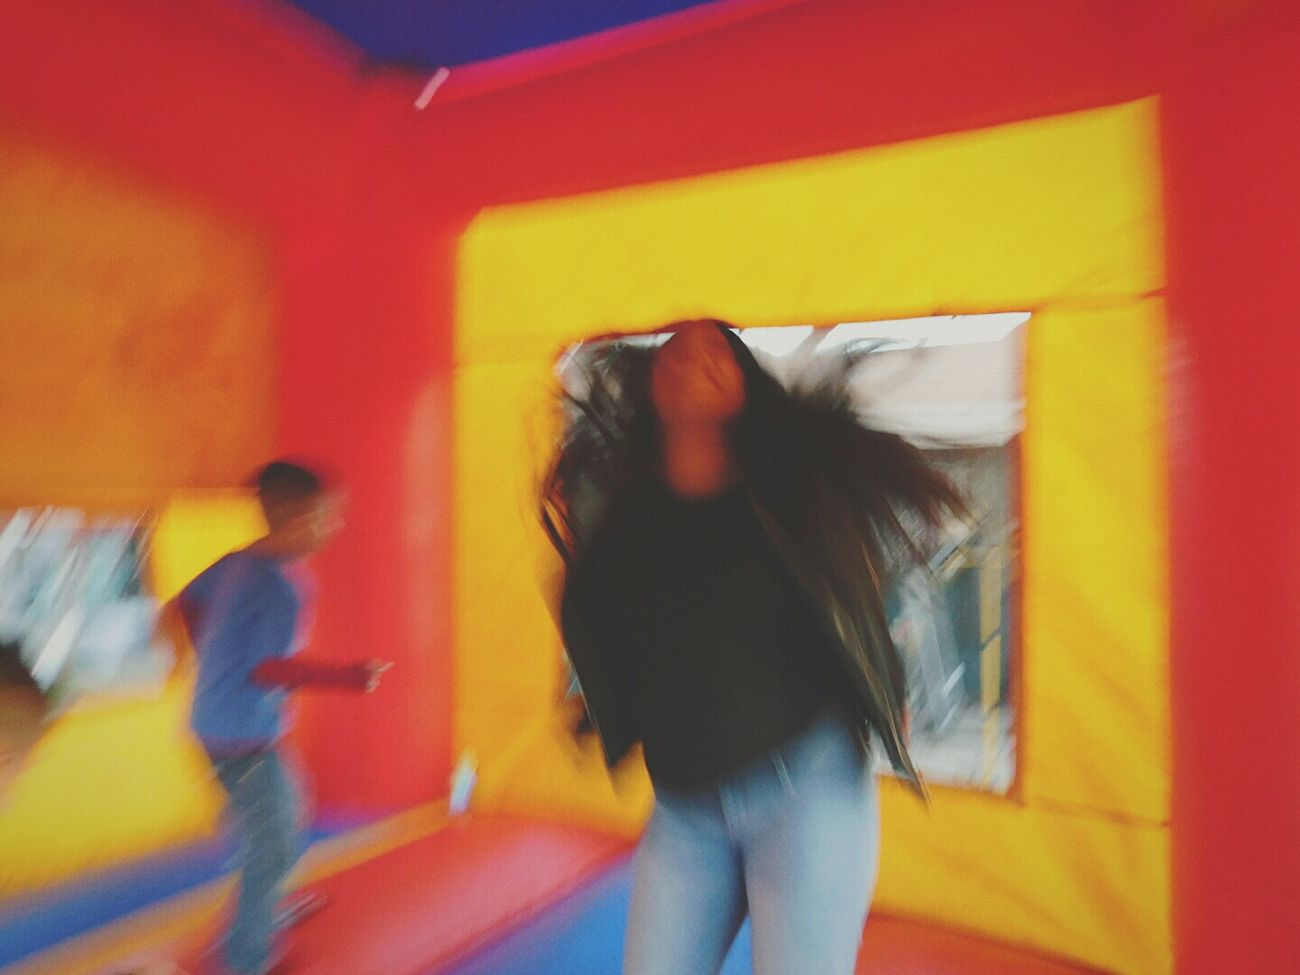 Blurry Accidently On Purpose Blurred Motion Birthdayparty Fun Bouncy Castle